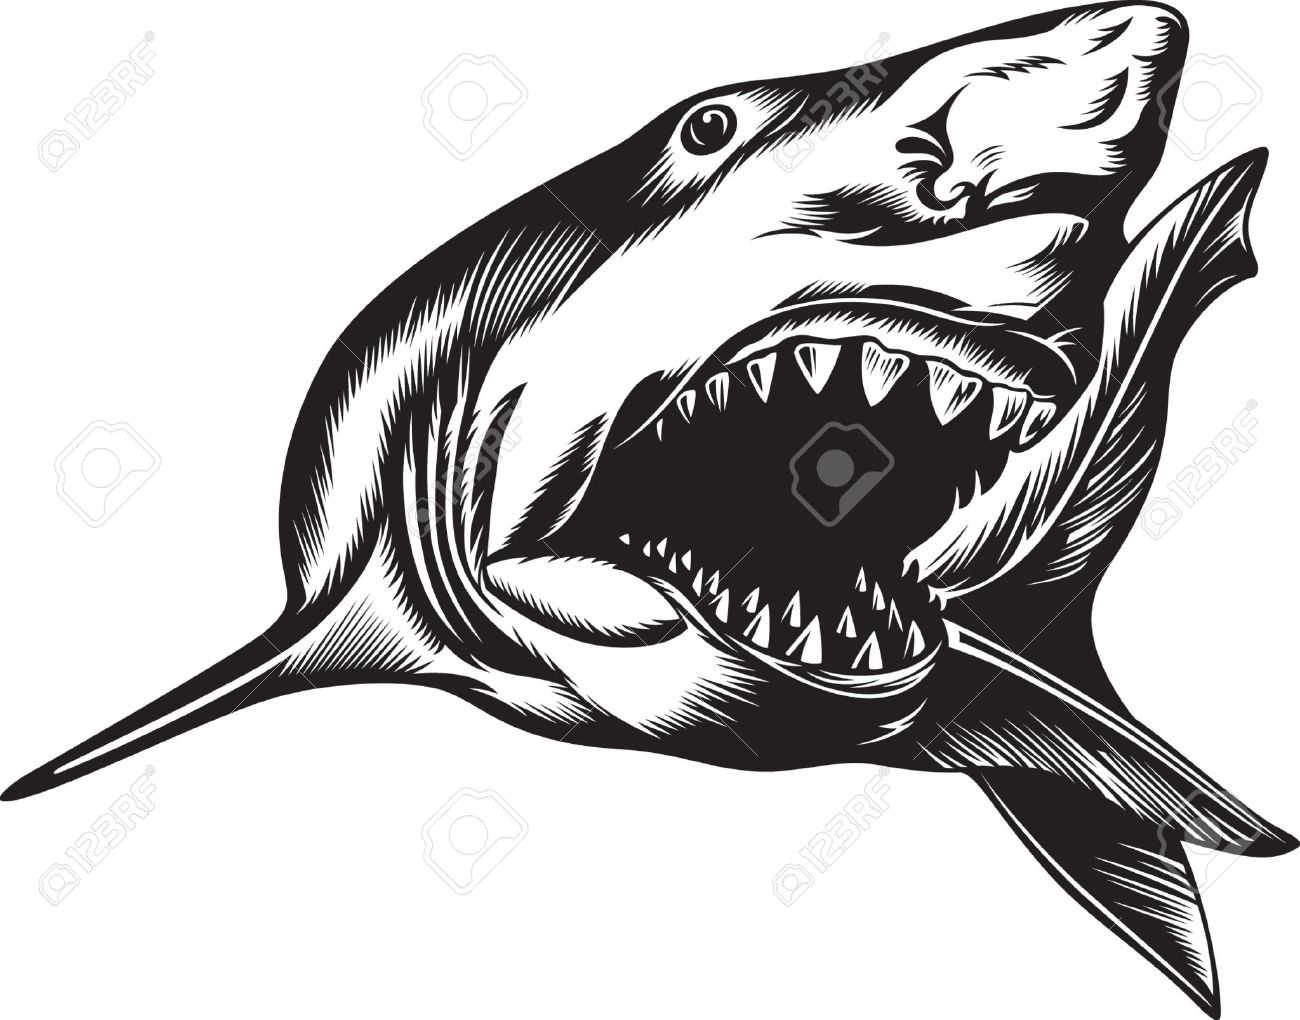 Big Aggressive Shark With Open Mouth Royalty Free Cliparts.